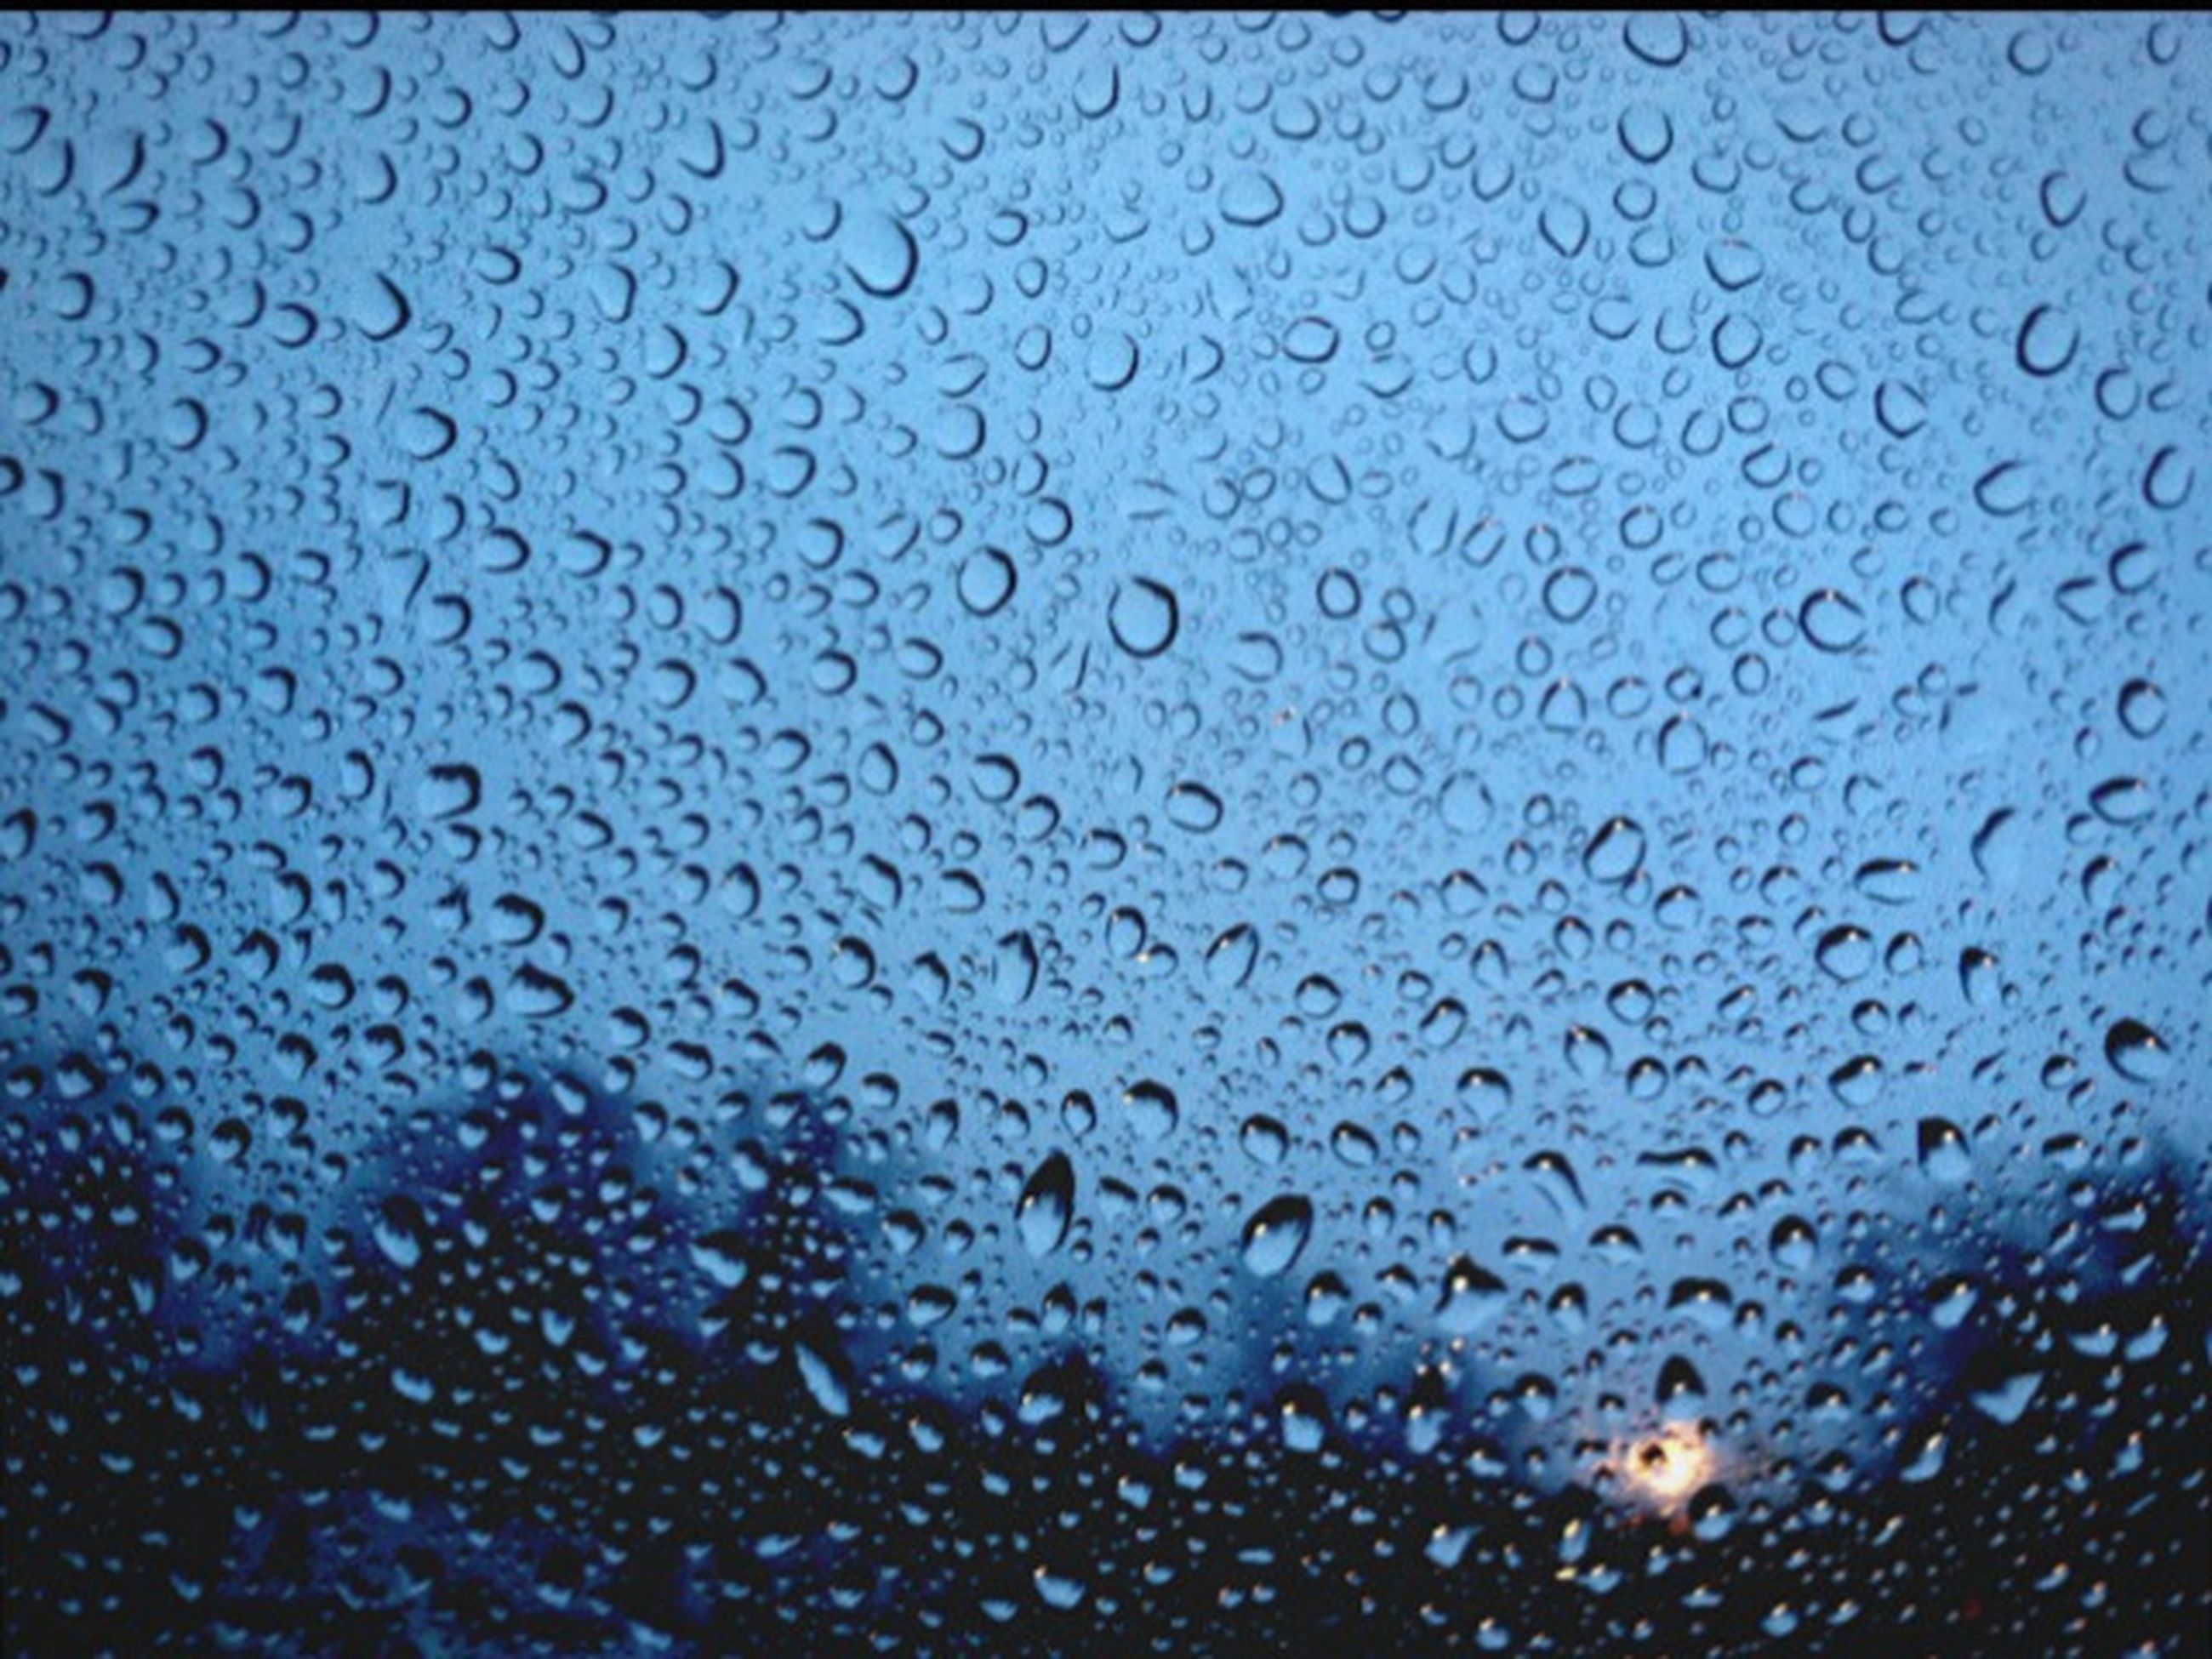 full frame, drop, backgrounds, wet, window, indoors, water, rain, glass - material, transparent, weather, raindrop, close-up, sky, season, glass, no people, pattern, focus on foreground, day